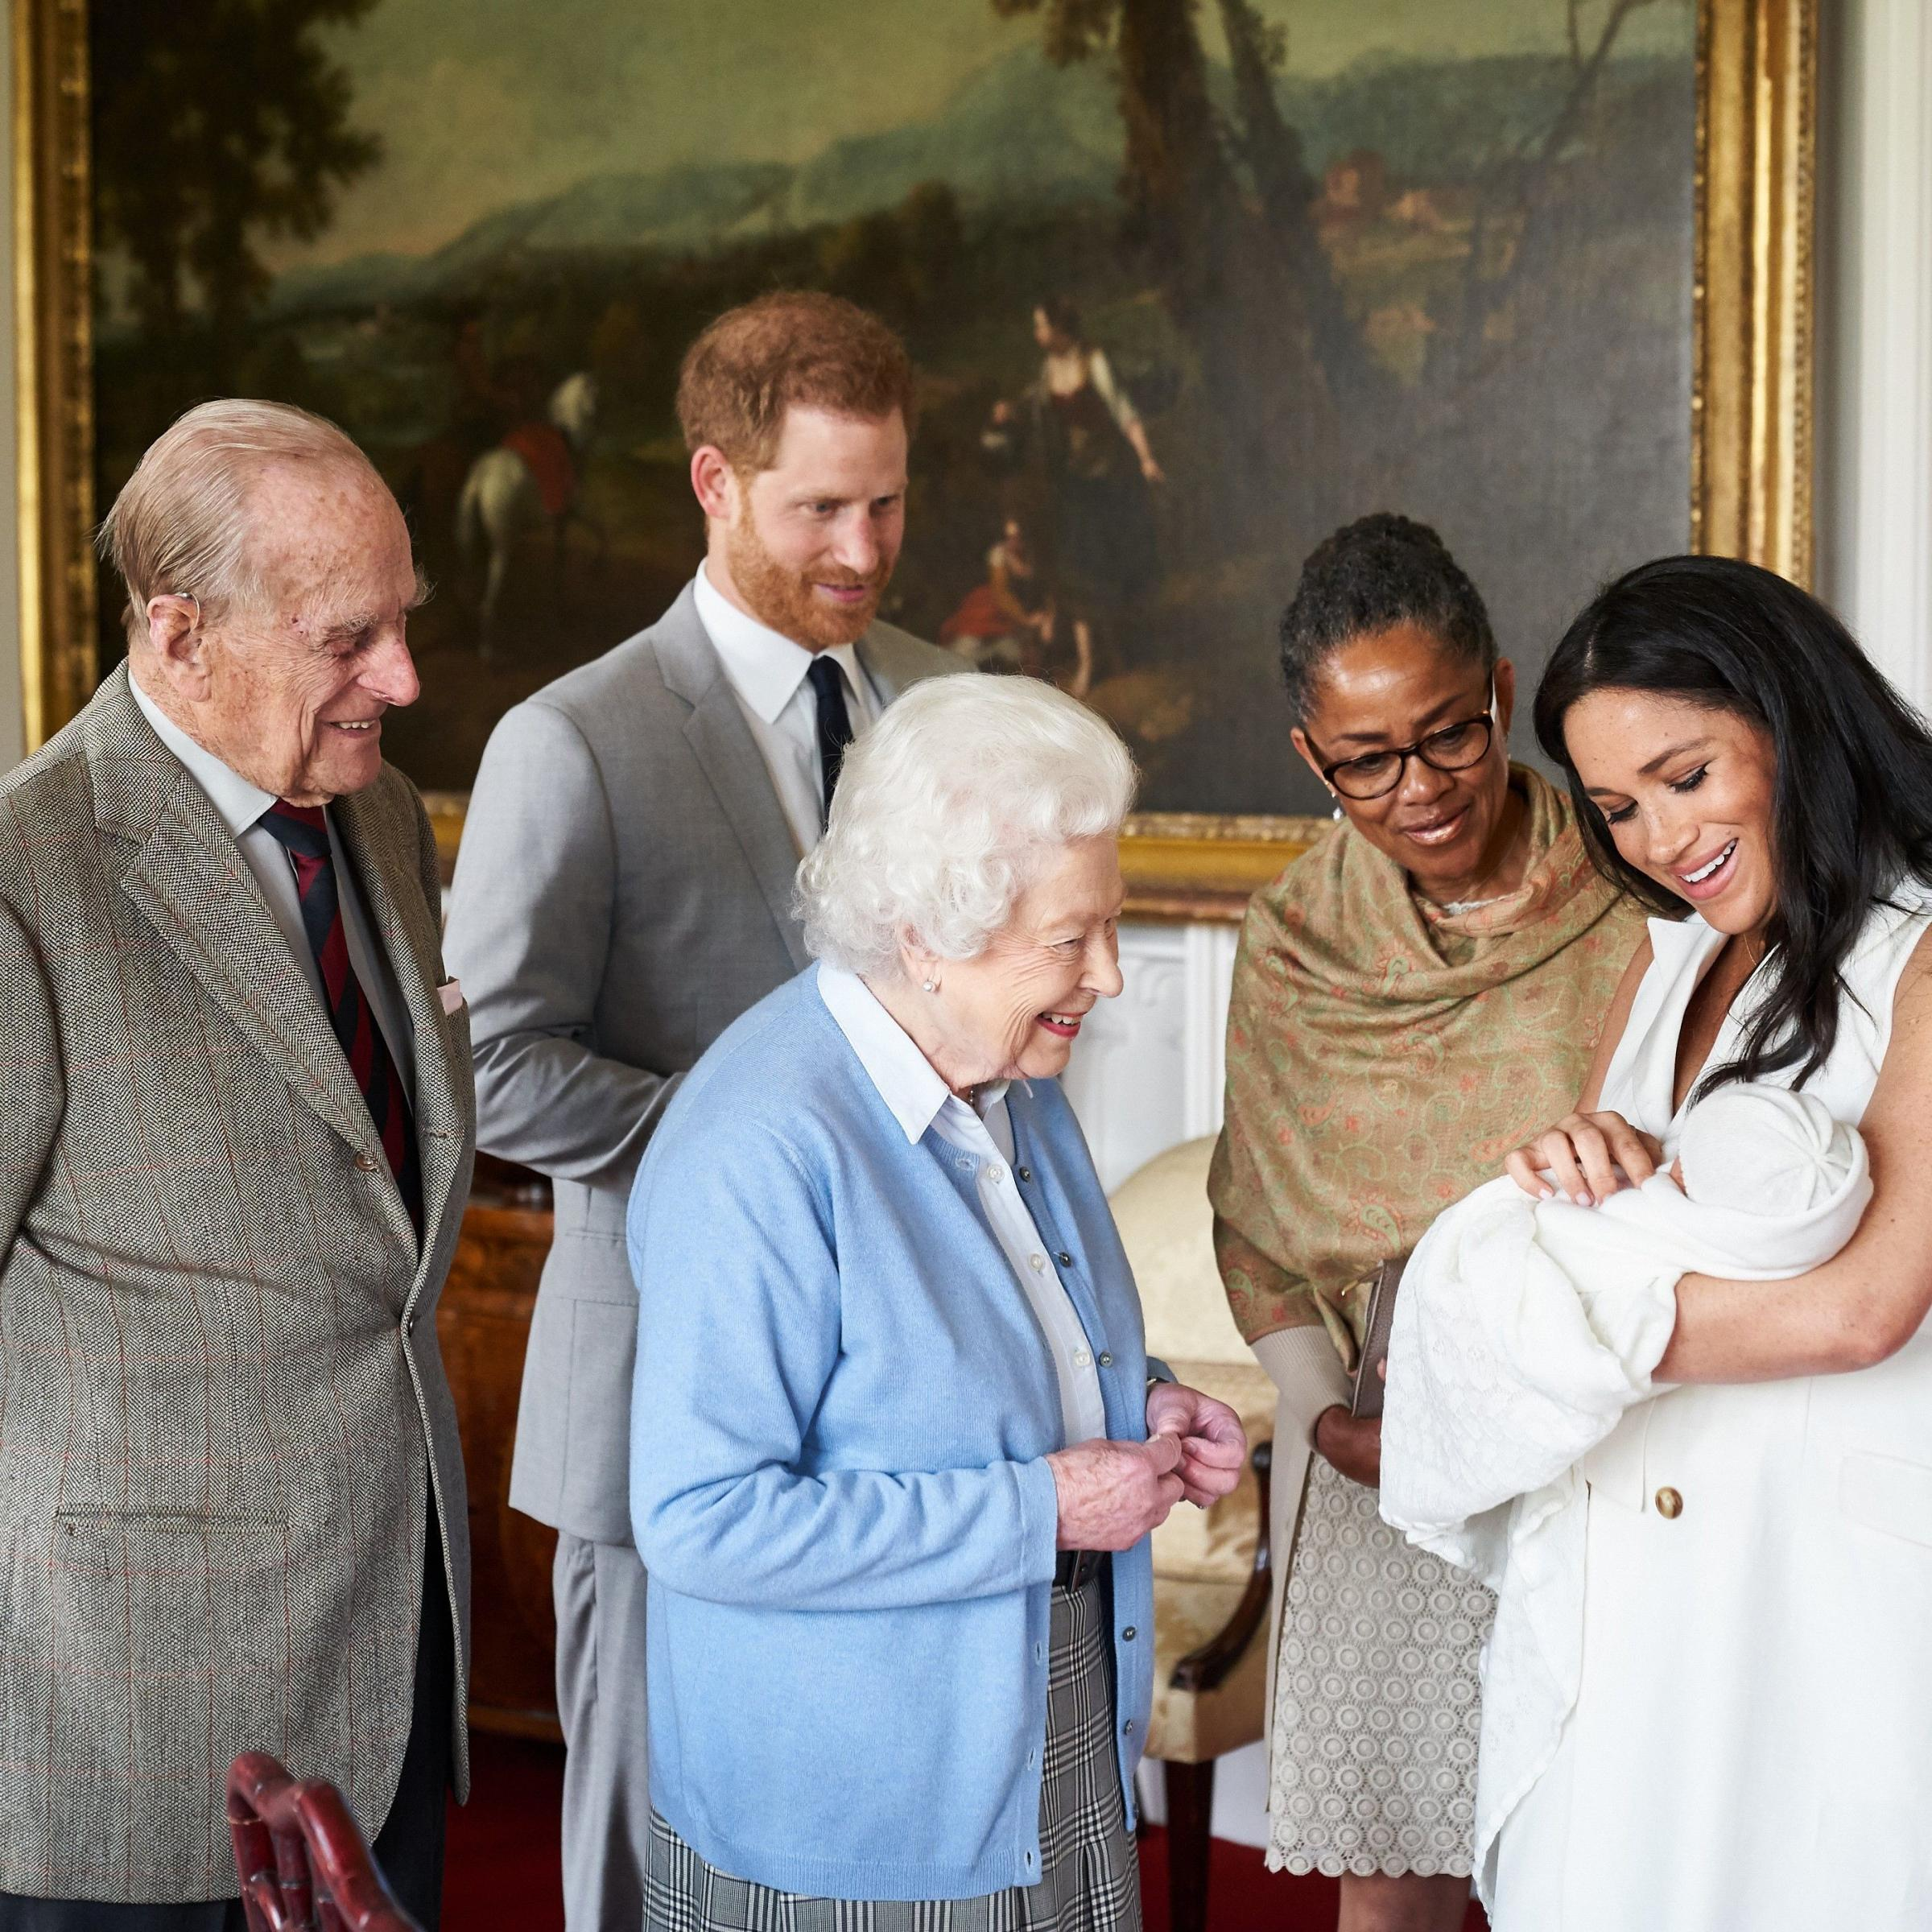 Royal family- photo by Chris Allerton/Sussex Royal